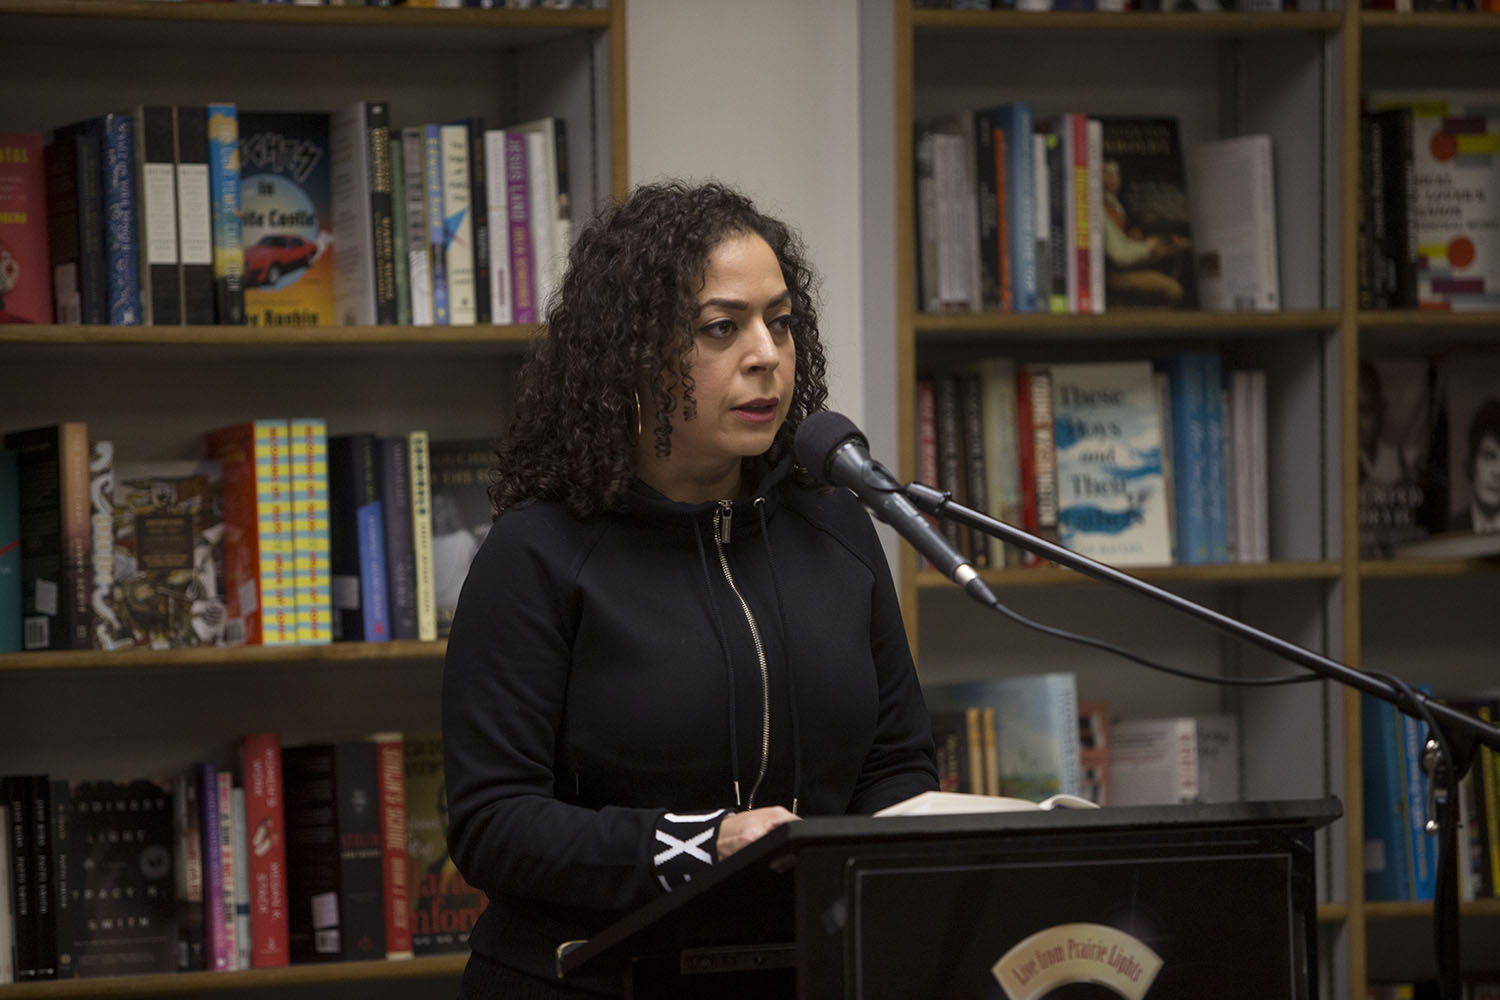 Author Jaquira Díaz reads from her memoir, Ordinary Girls, during a Live From Prairie Lights event on Tuesday, Nov. 5, 2019. Ordinary Girls details her life growing up in Puerto Rico and Miami Beach and the struggles she faced. Díaz is the recipient of a variety of fellowships and awards for her work and is currently a Visiting Assistant Professor at the University of Wisconsin-Madison's MFA program in Creative Writing.